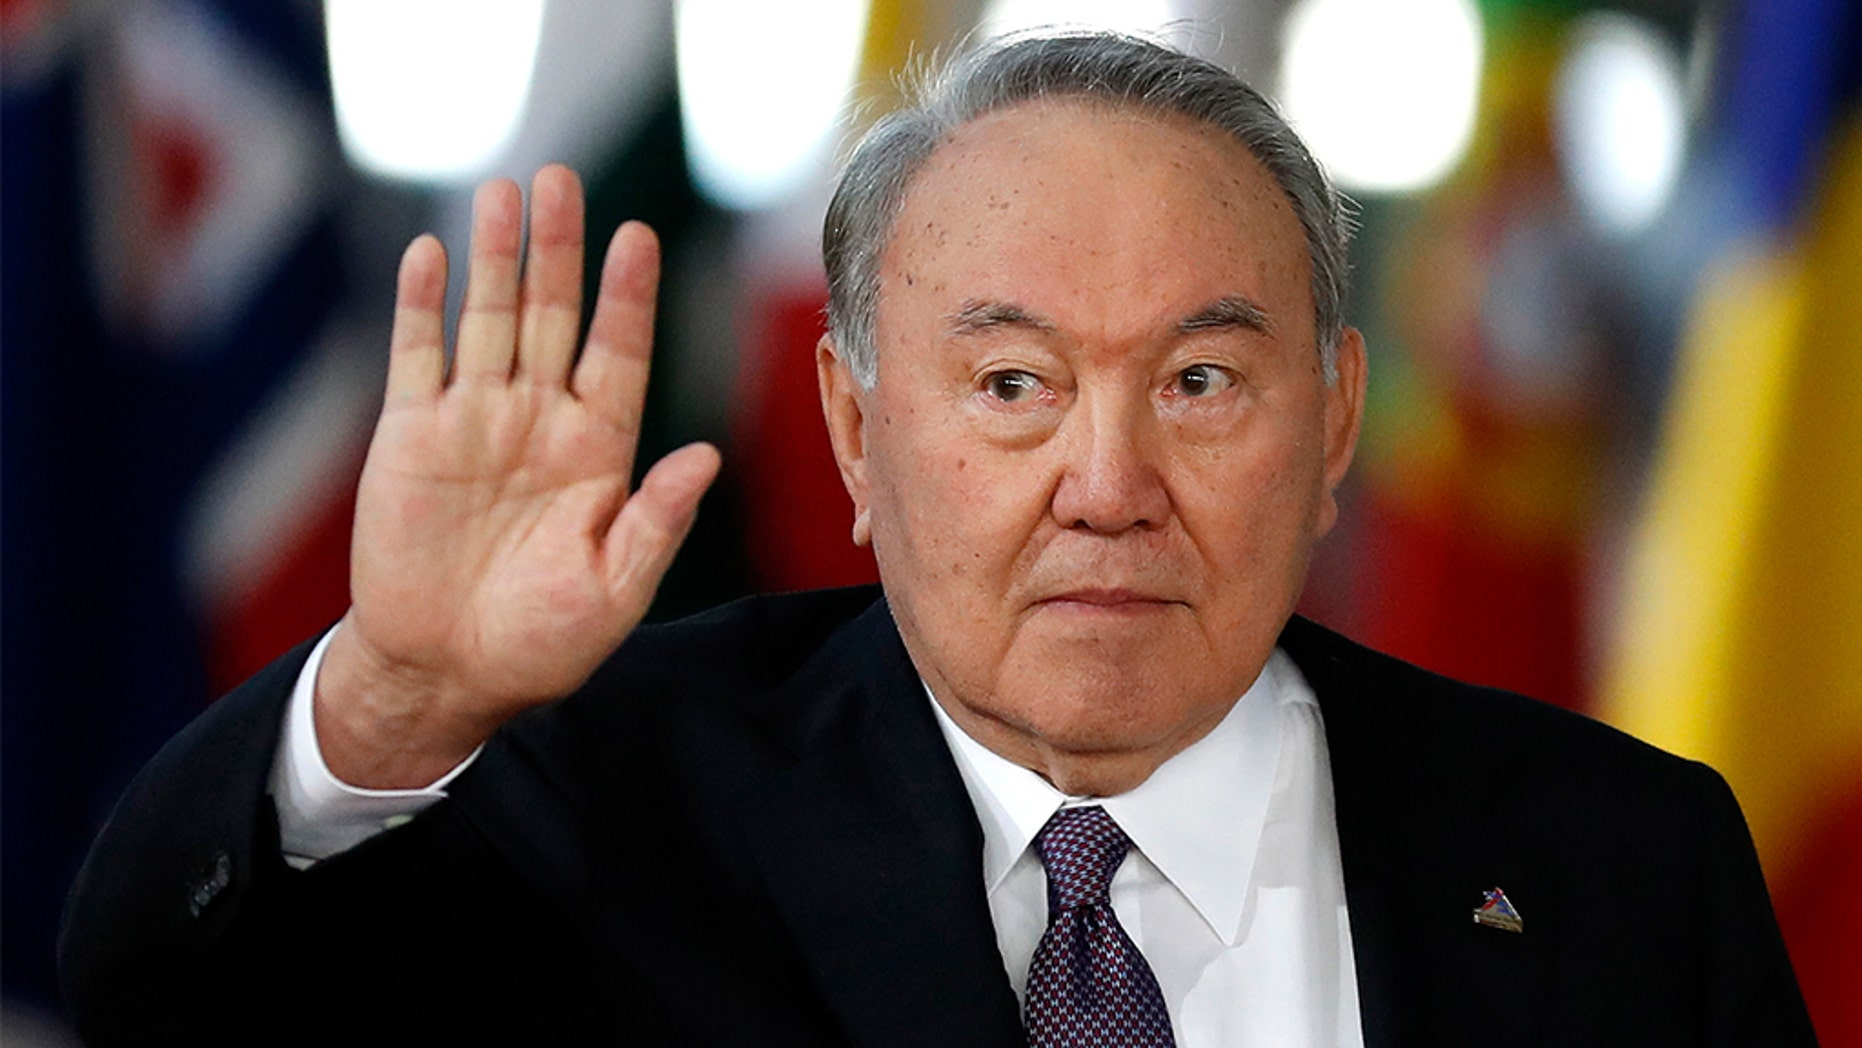 FILE - In this file photo taken on Oct. 18, 2018, Kazakhstan's President Nursultan Nazarbayev arrives for the ASEM 12 in Brussels. Nazarbayev, who has ruled the oil-rich ex-Soviet nation for nearly three decades, announced his resignation in a televised address to the nation on Tuesday, March 19, 2019. (AP Photo/Alastair Grant, File)